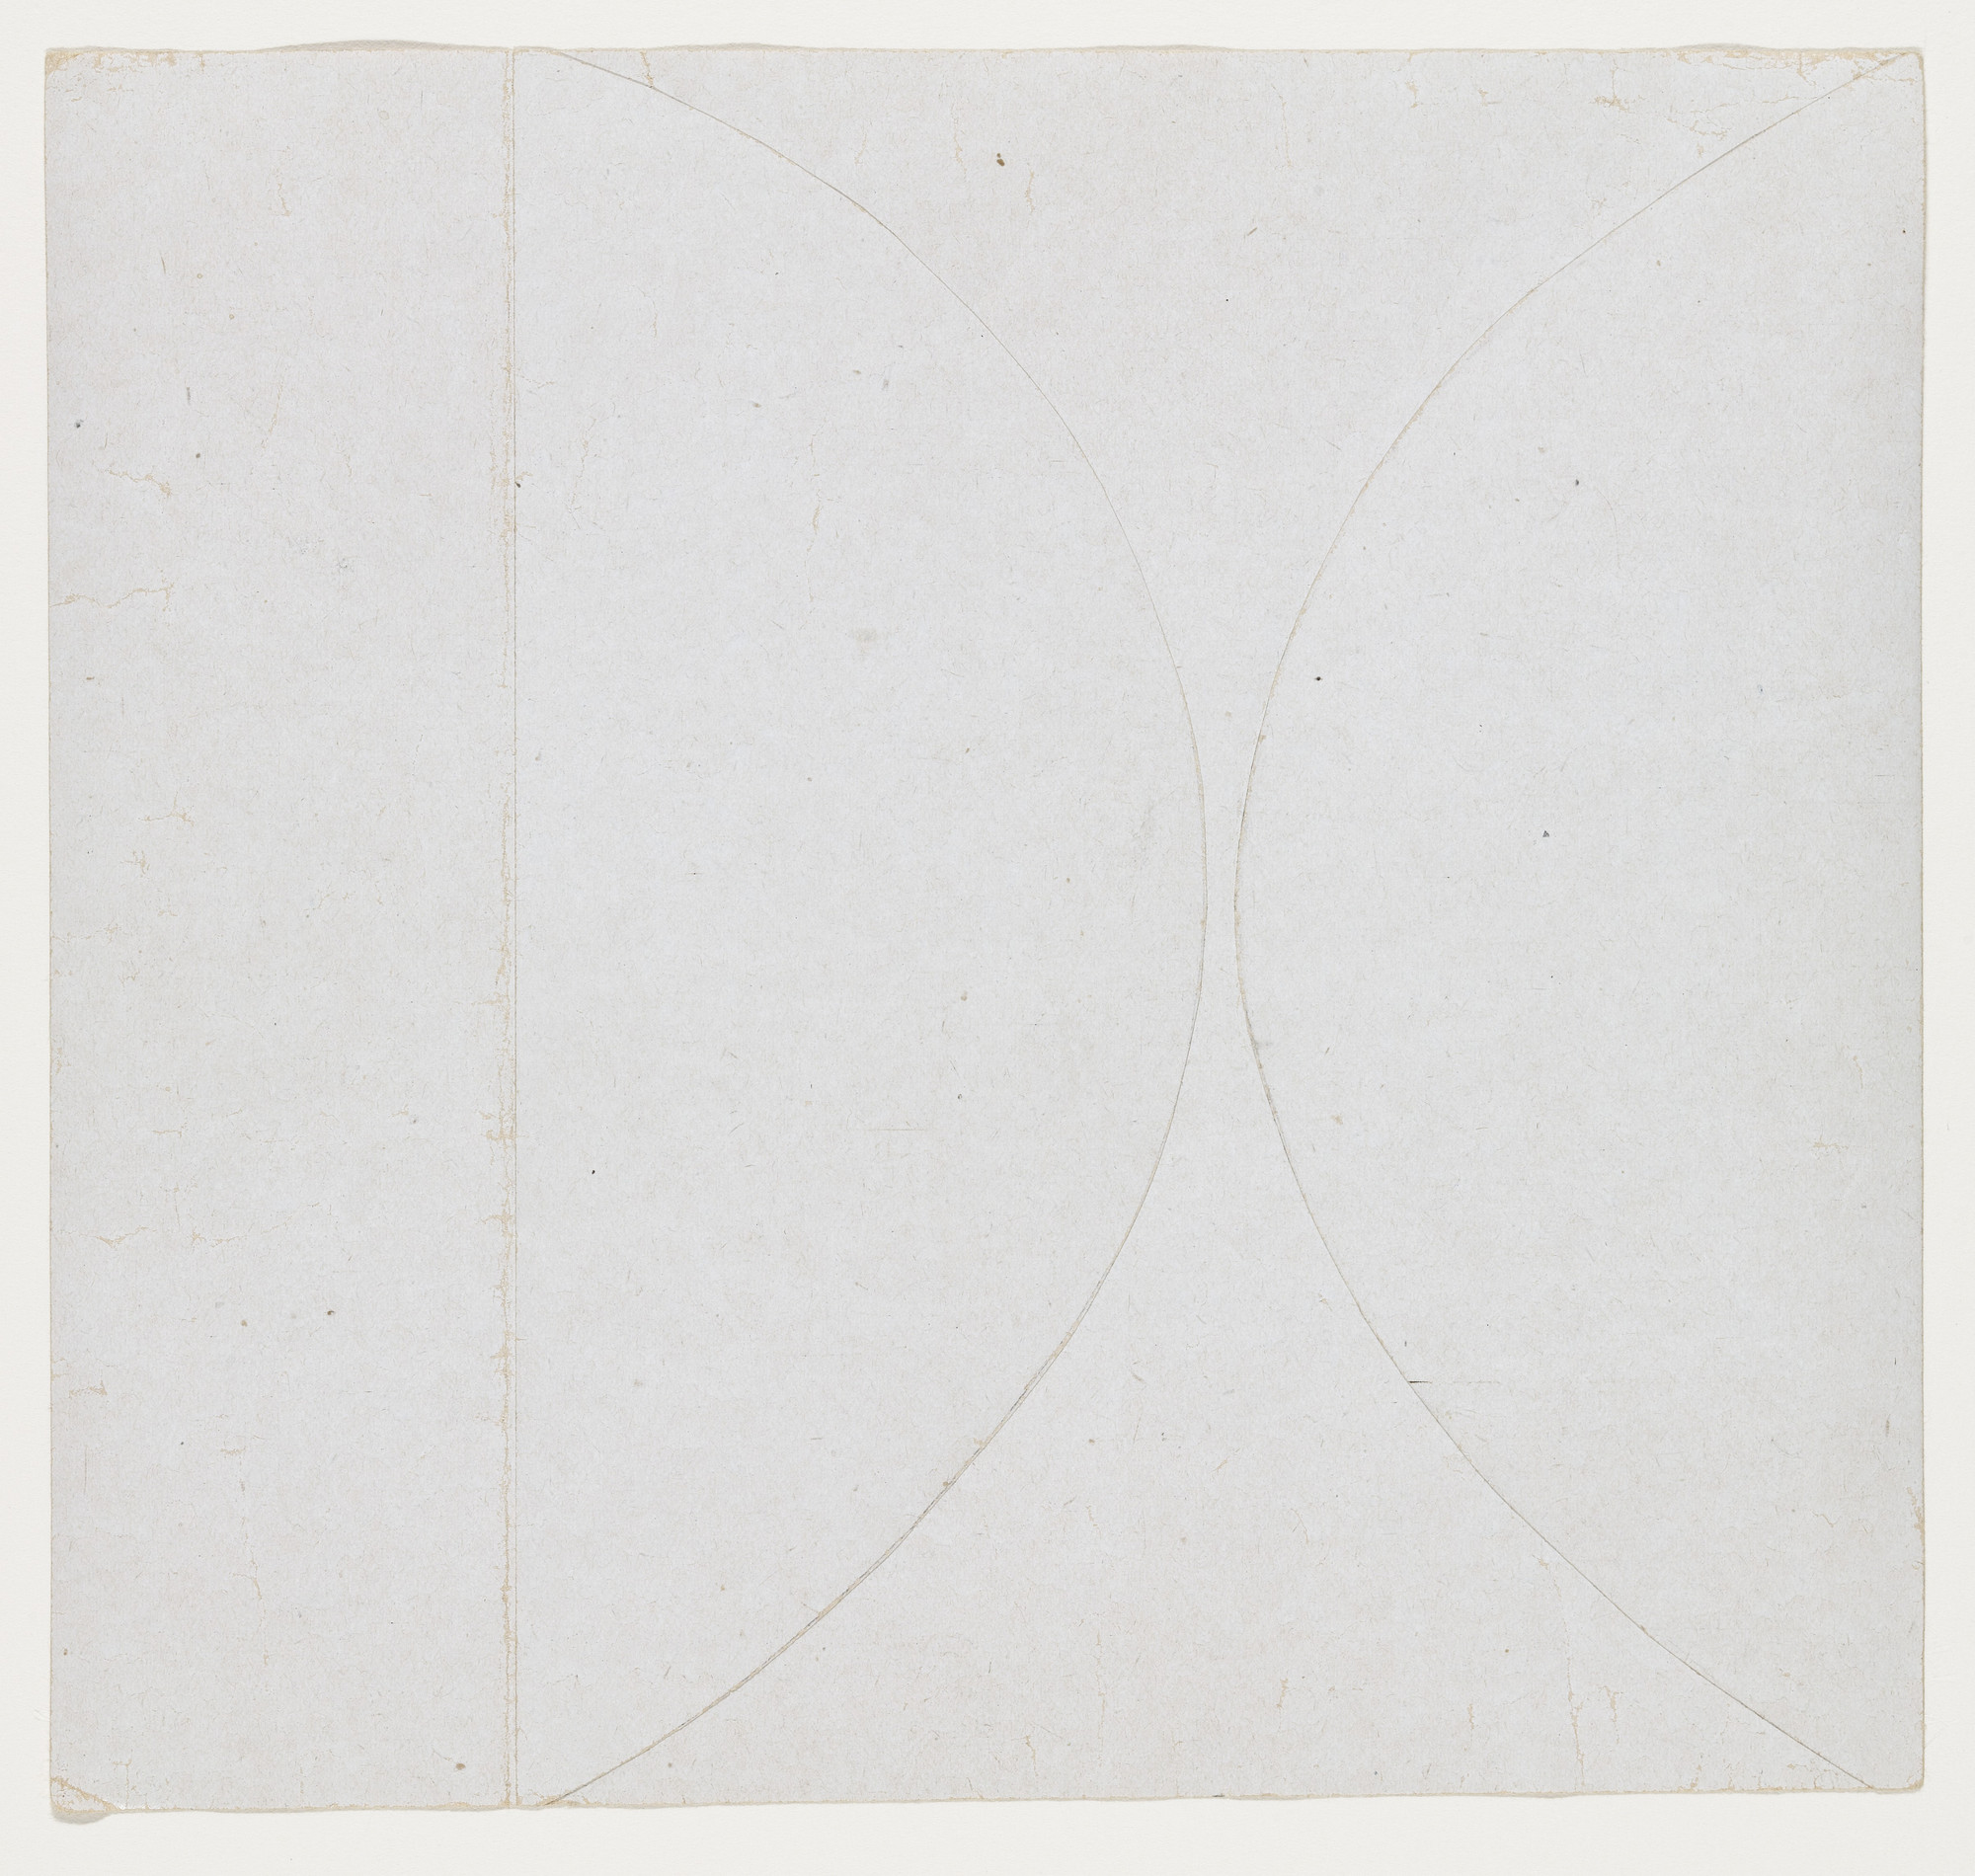 Ellsworth Kelly. White on White. 1951